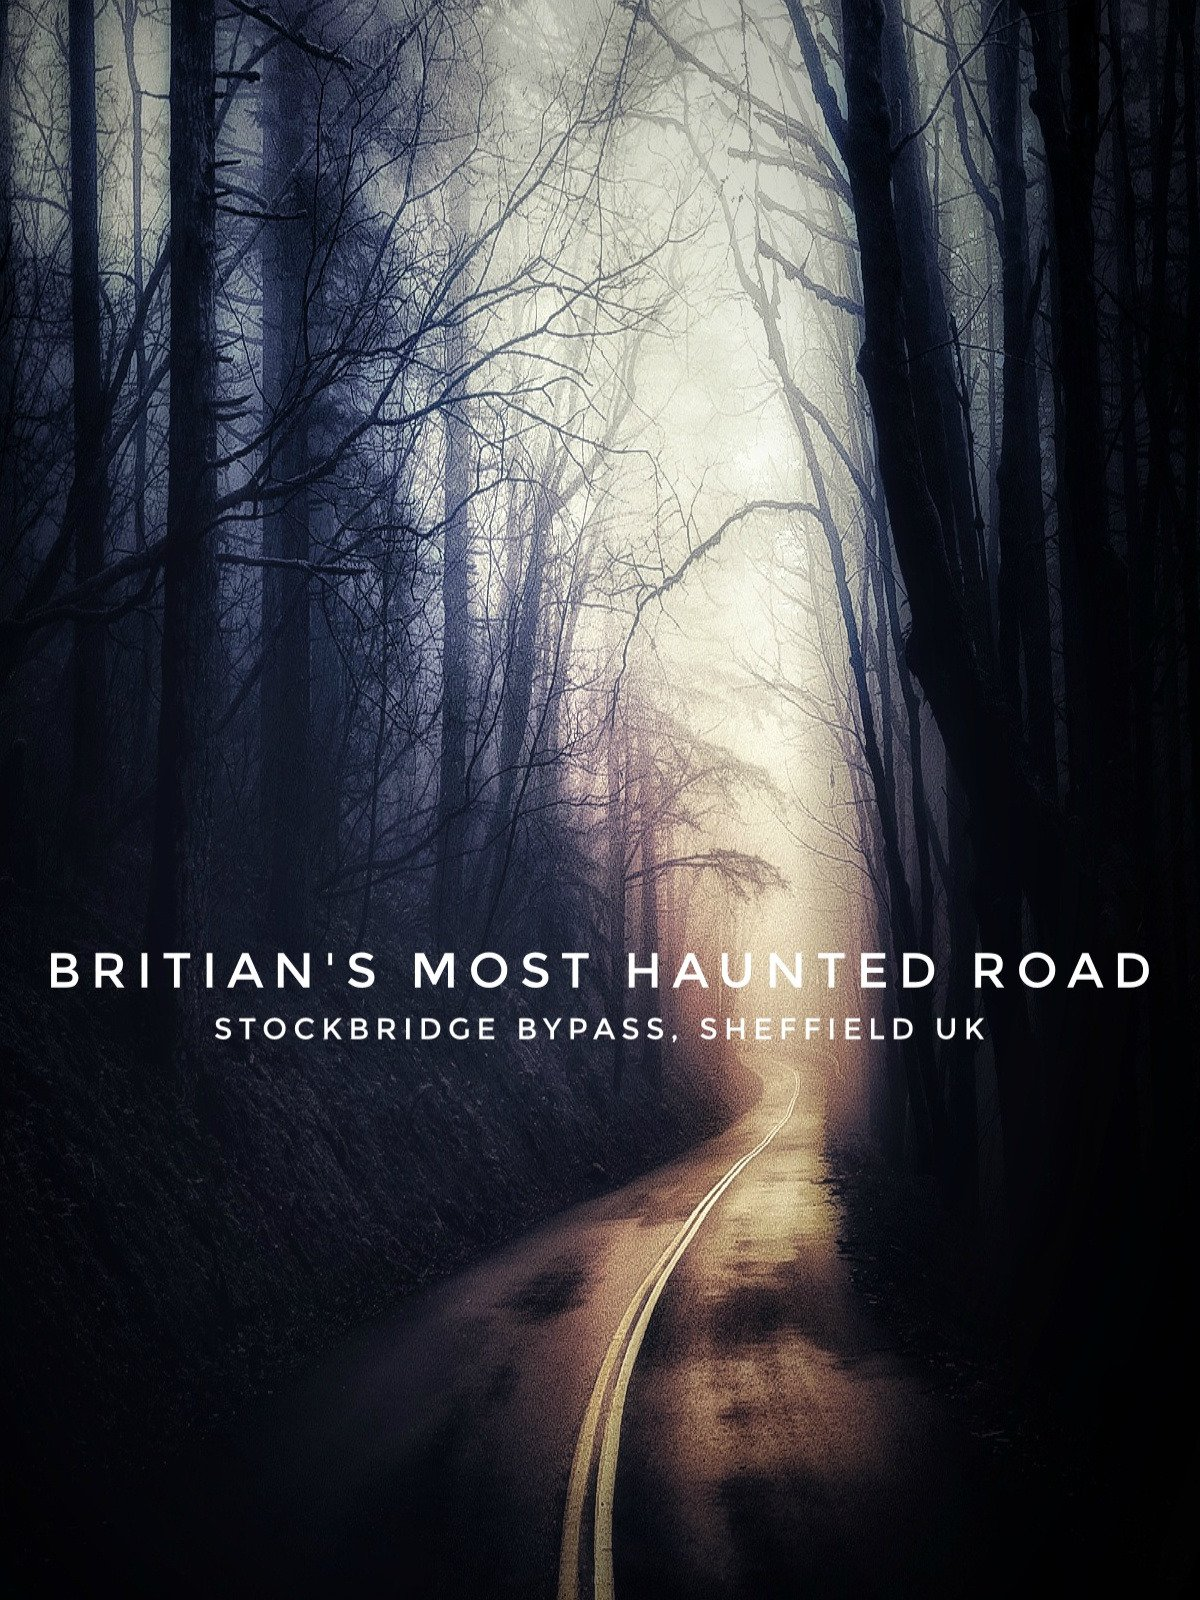 Britian's Most Haunted Road | Stocksbridge Bypass, Sheffield UK on Amazon Prime Video UK